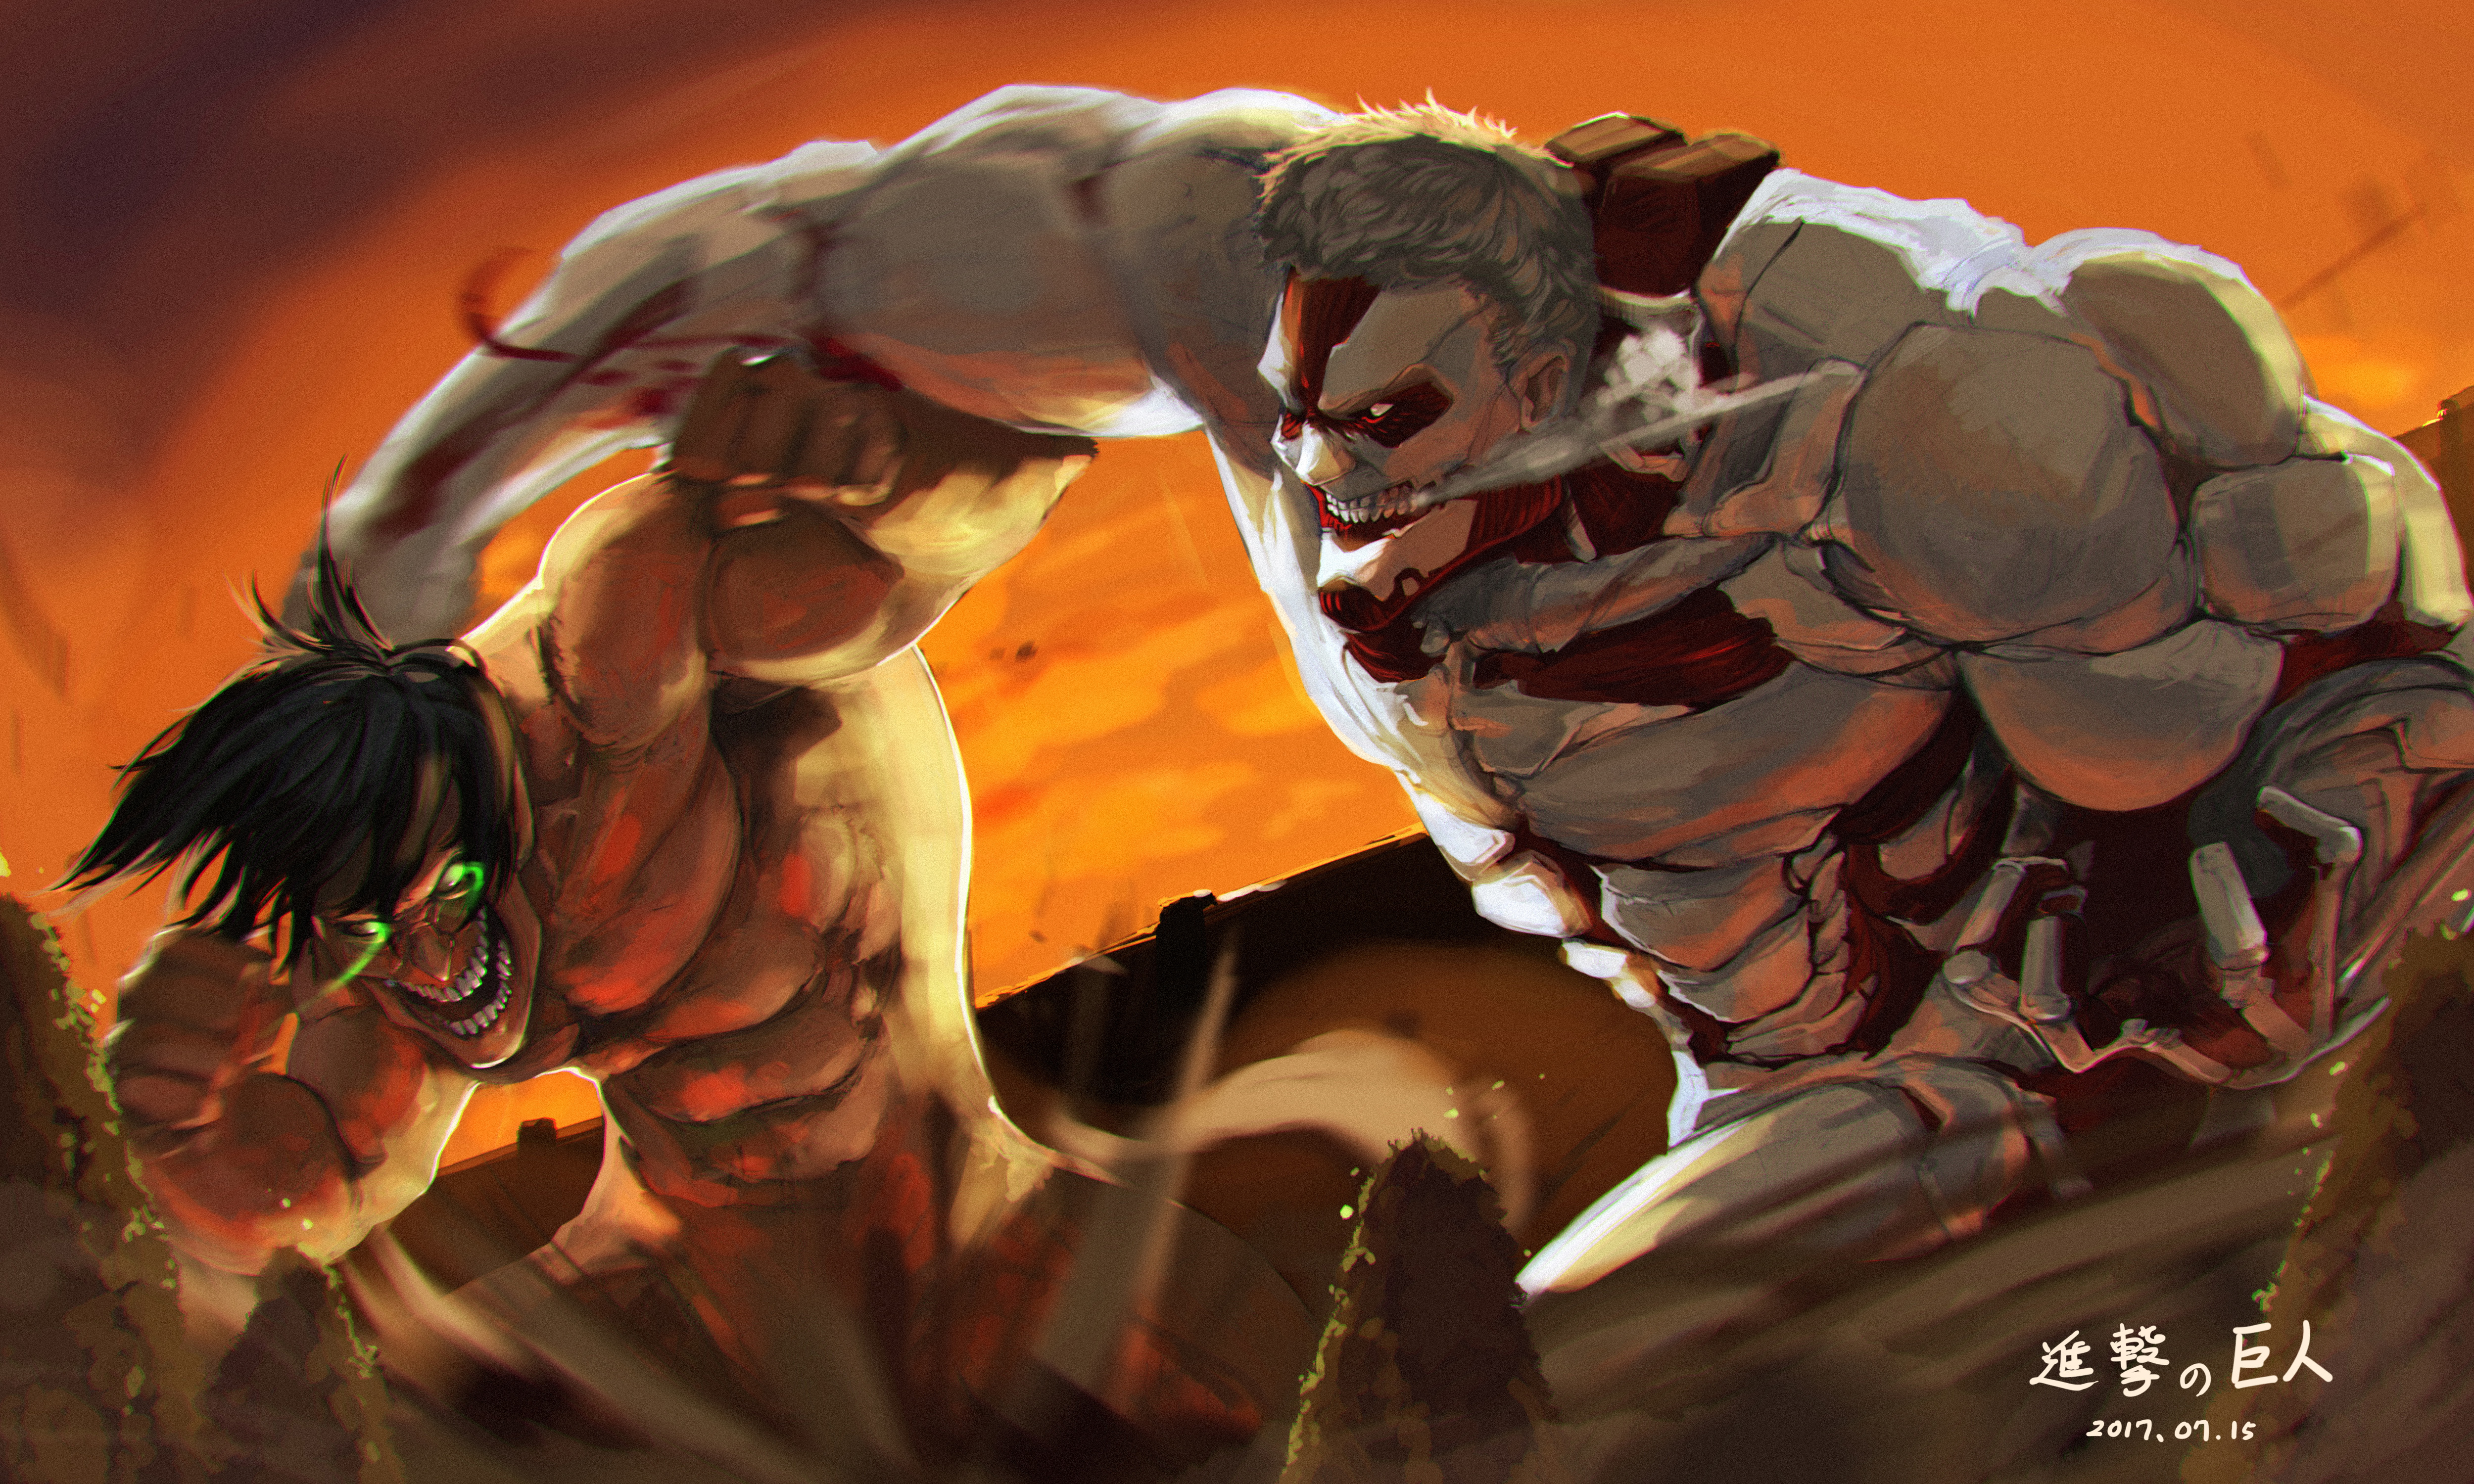 Armored Titan Attack On Titan Eren Yeager Reiner Braun Wallpaper Resolution 5000x3000 Id 1104488 Wallha Com